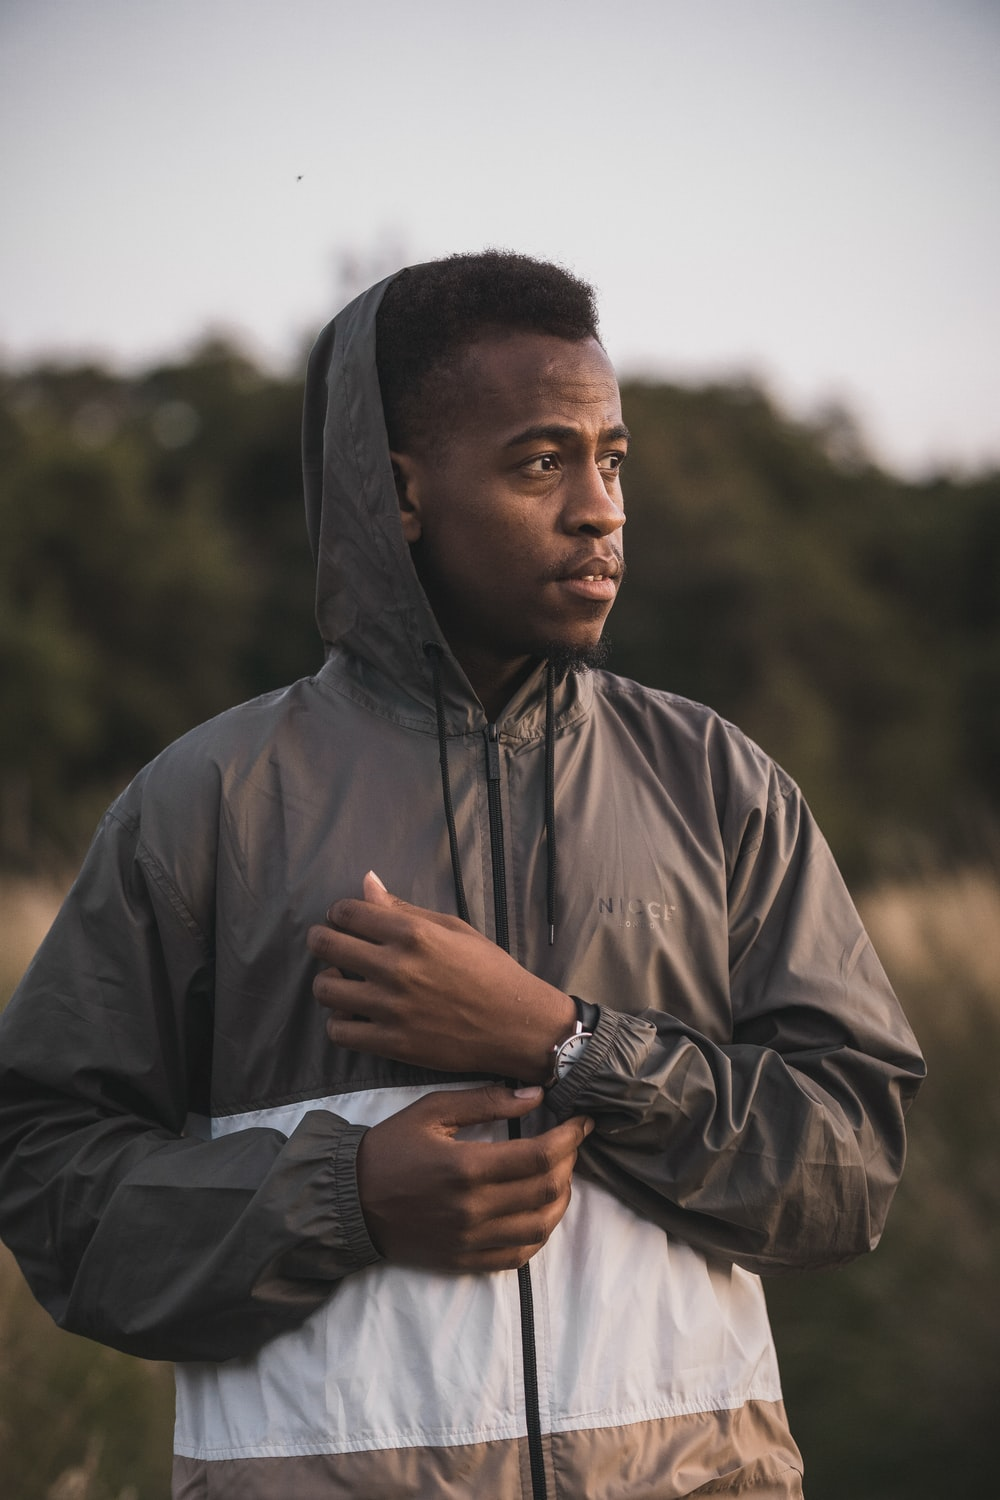 man wearing grey and white zip-up hooded jacket